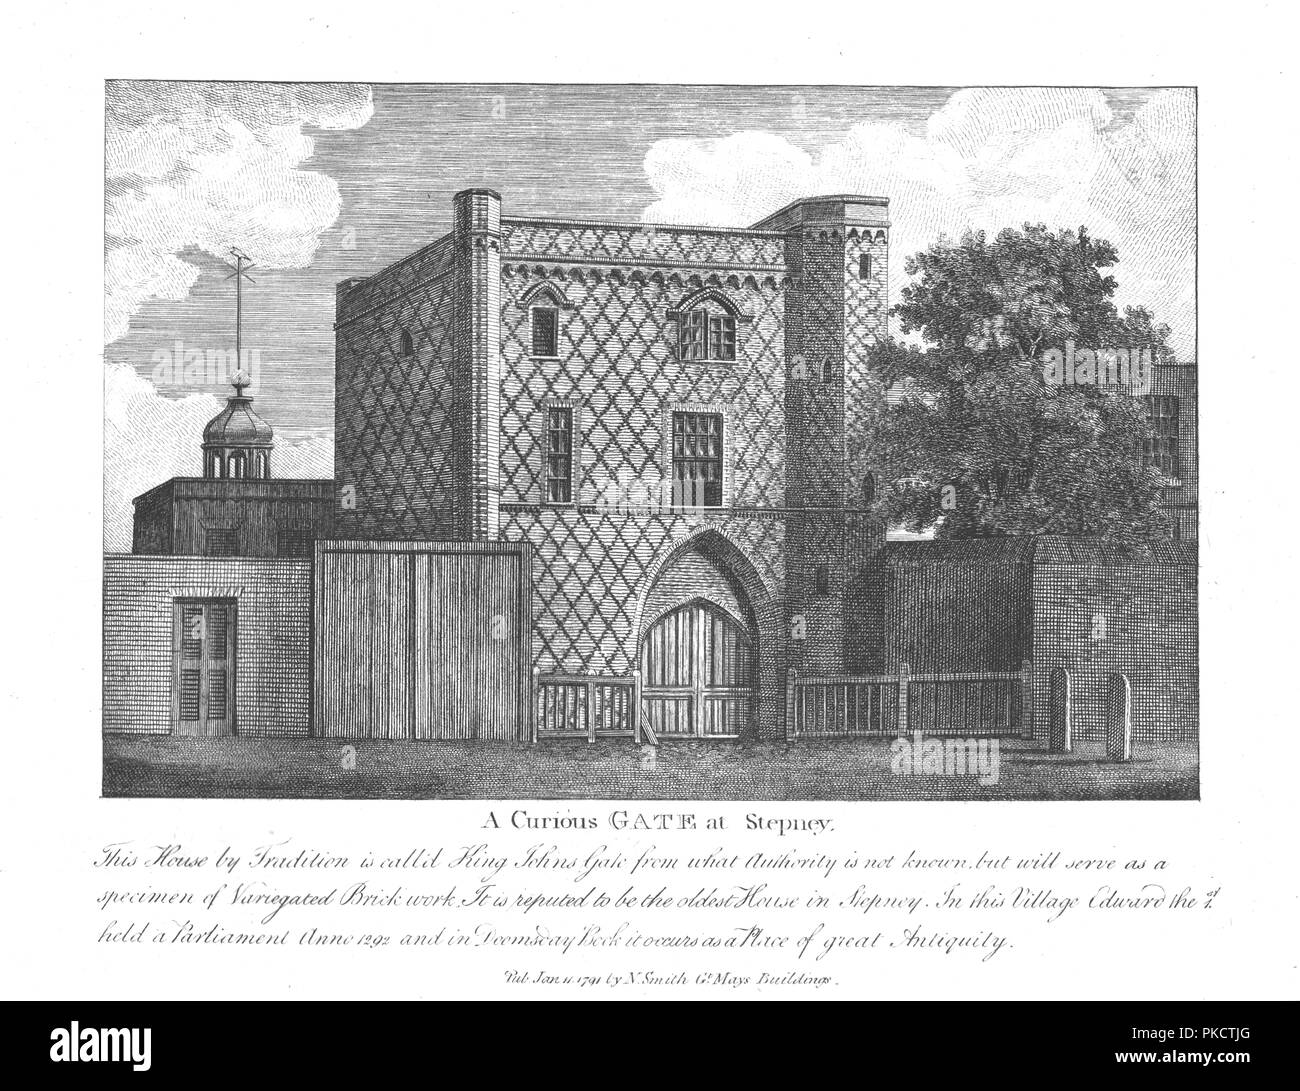 'A Curious Gate at Stepney', 1791. 'This House by Tradition is call'd King Johns Gate from what Authority is not known, but will serve as a specimen of Variegated Brick work. It is reputed to be the oldest House in Stepney. In this Village Edward the I held a Parliament Anno 1292 and in Doomsday Book it occurs as a Place of great Antiquity.' Brick building in Stepney, London, also known as St John's Gate. - Stock Image